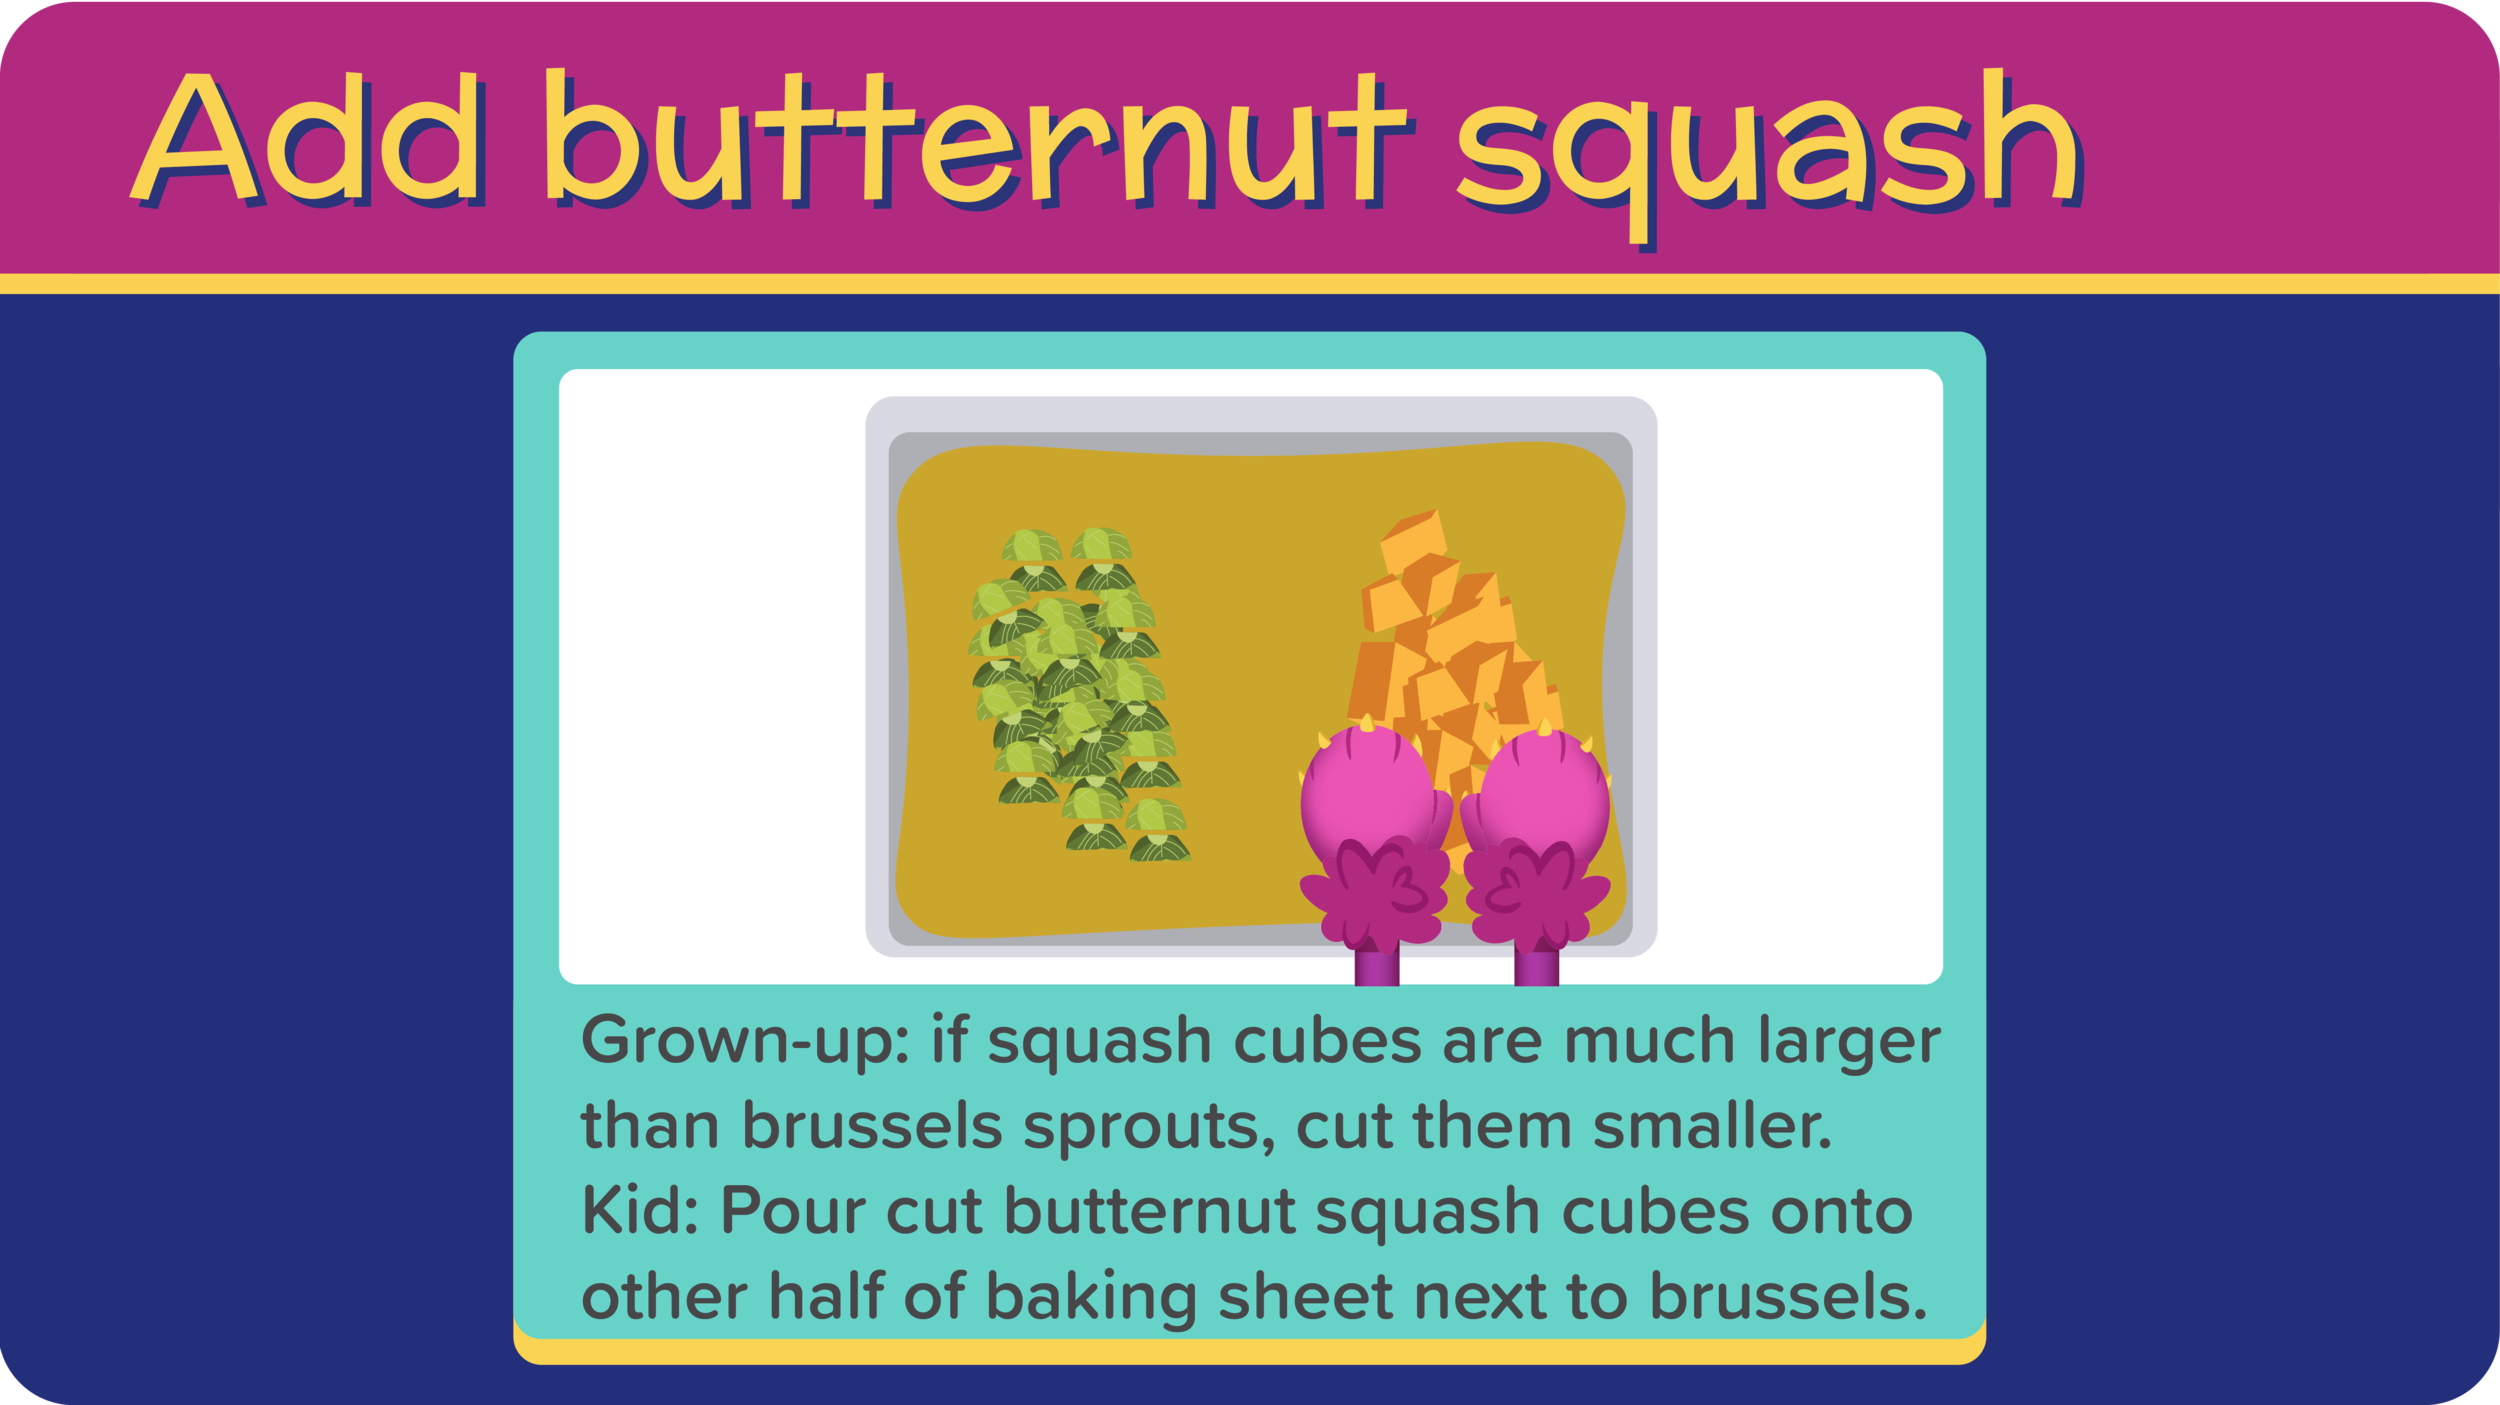 11_ChickenFingersButternutBrussels_squash on sheet-01.png